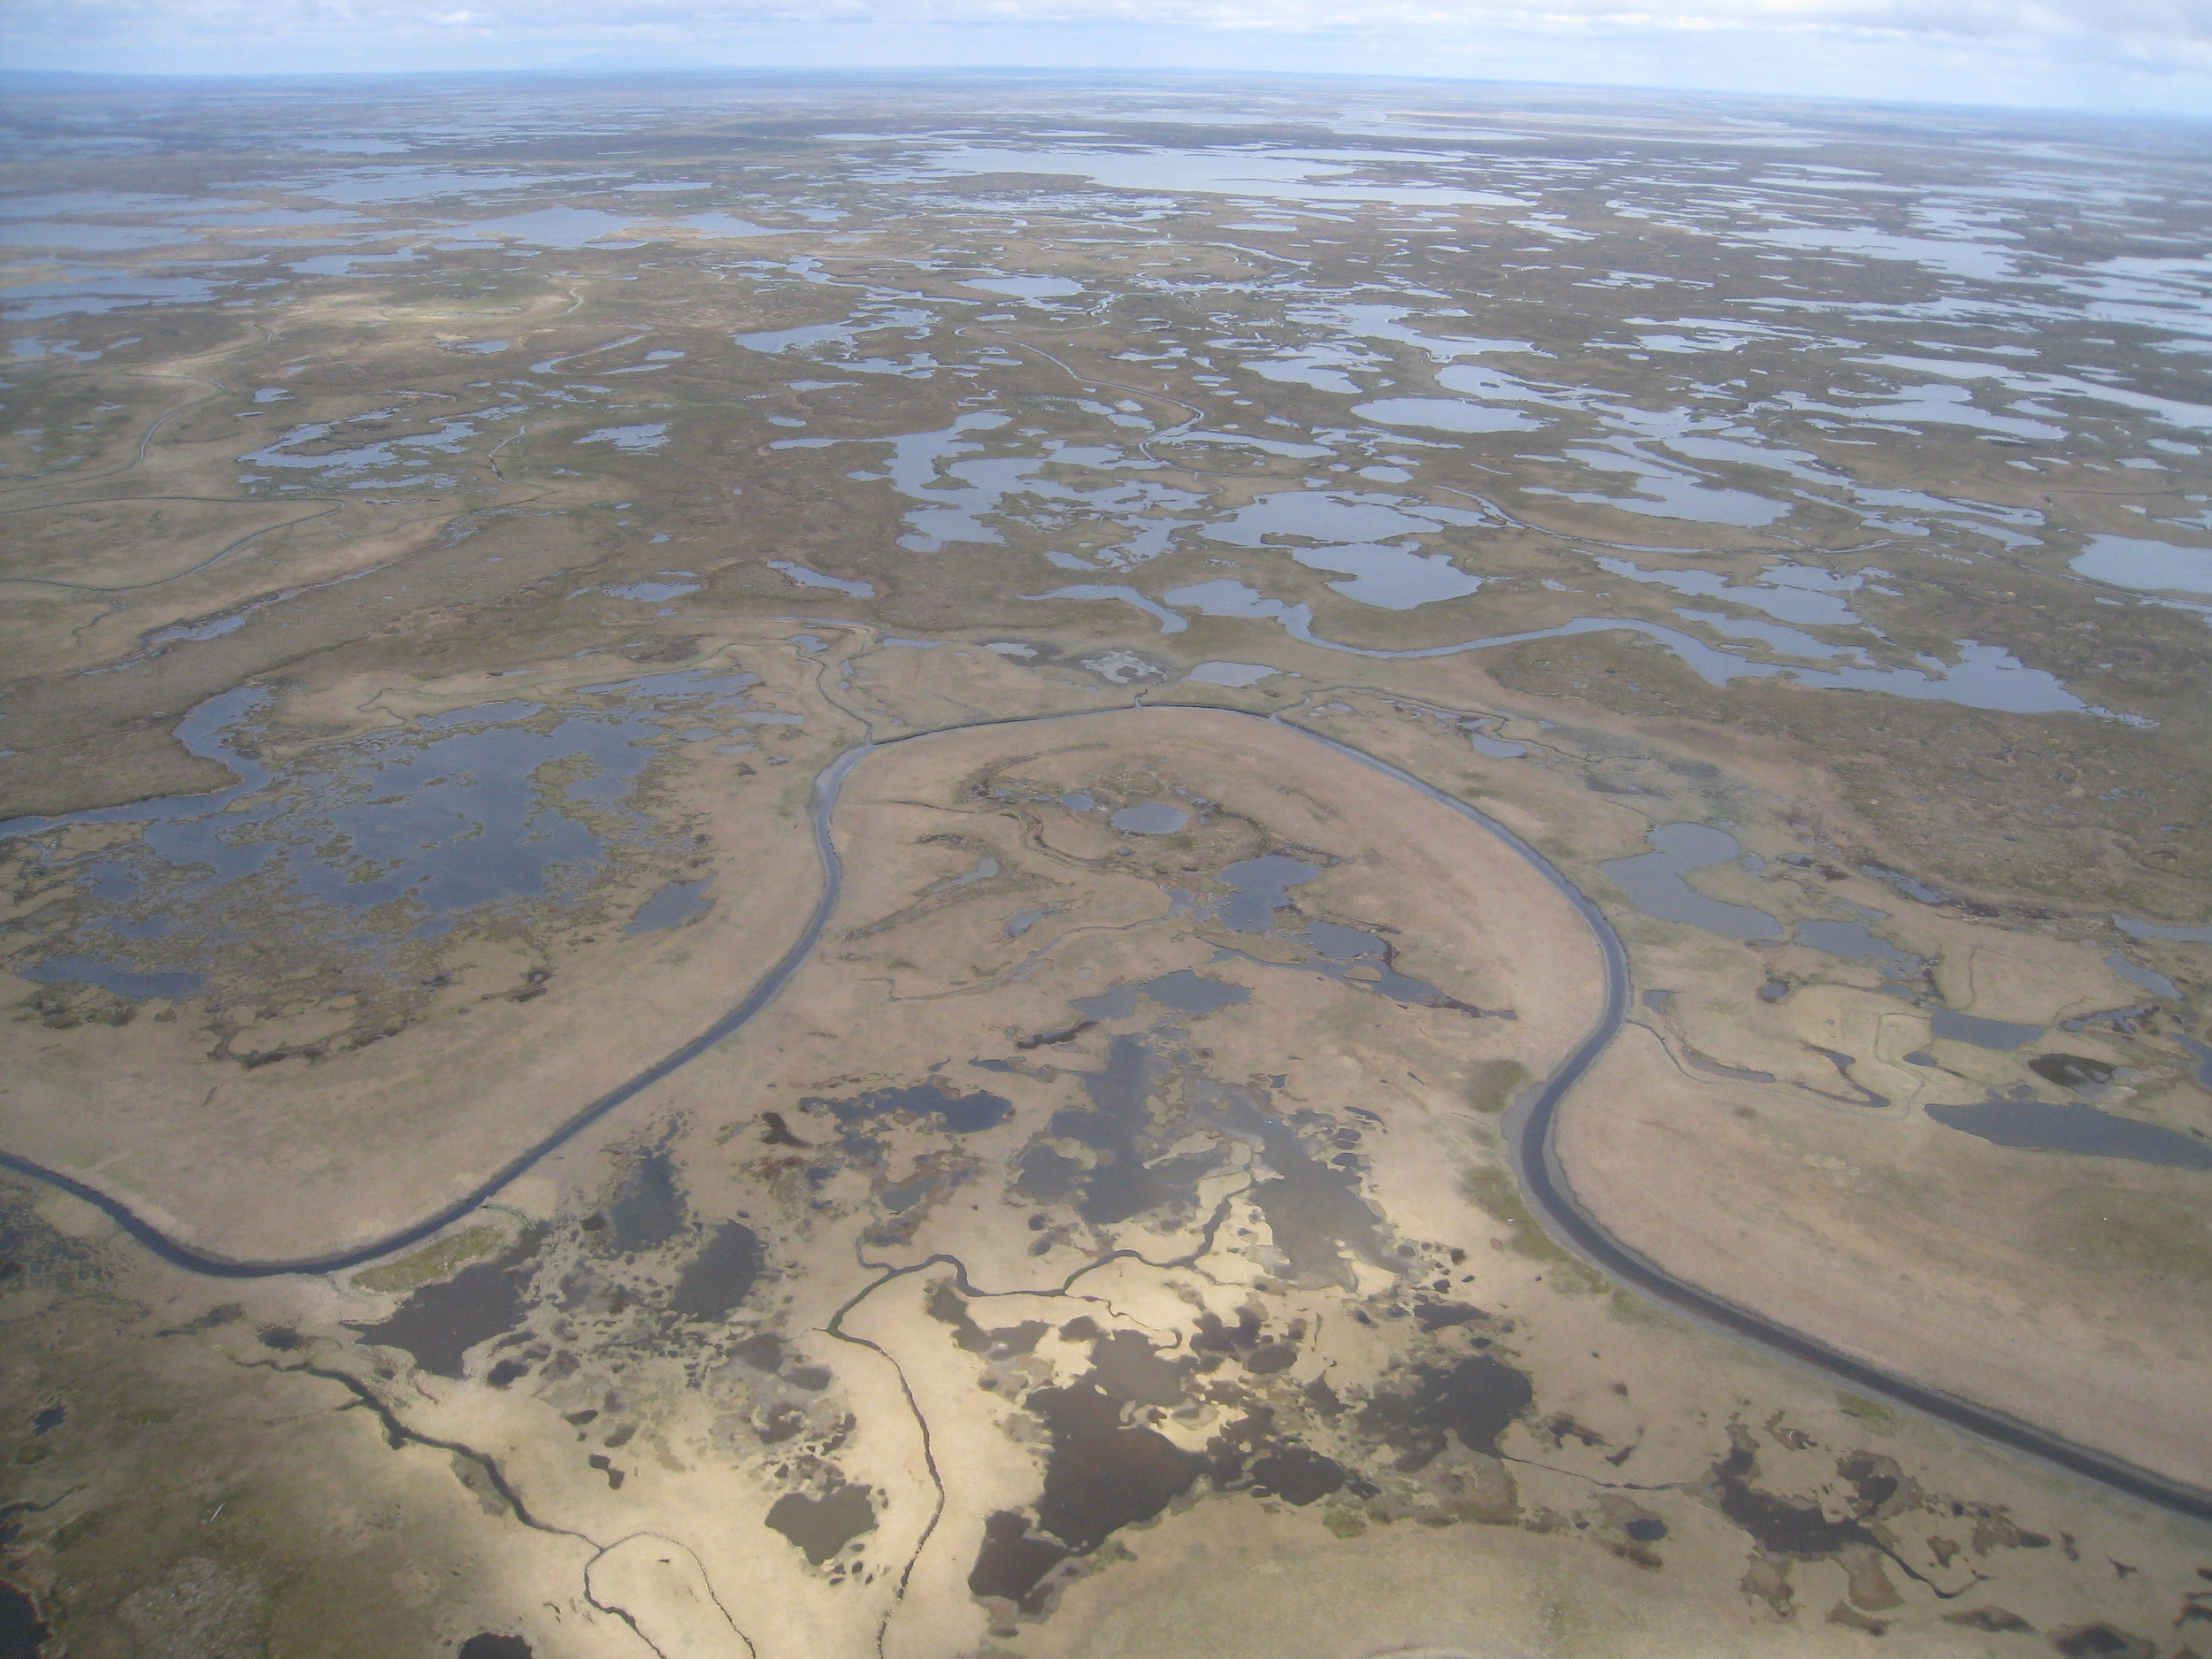 An aerial view of the Yukon-Kuskokwim Delta in western Alaska. All photos: Karen Beard